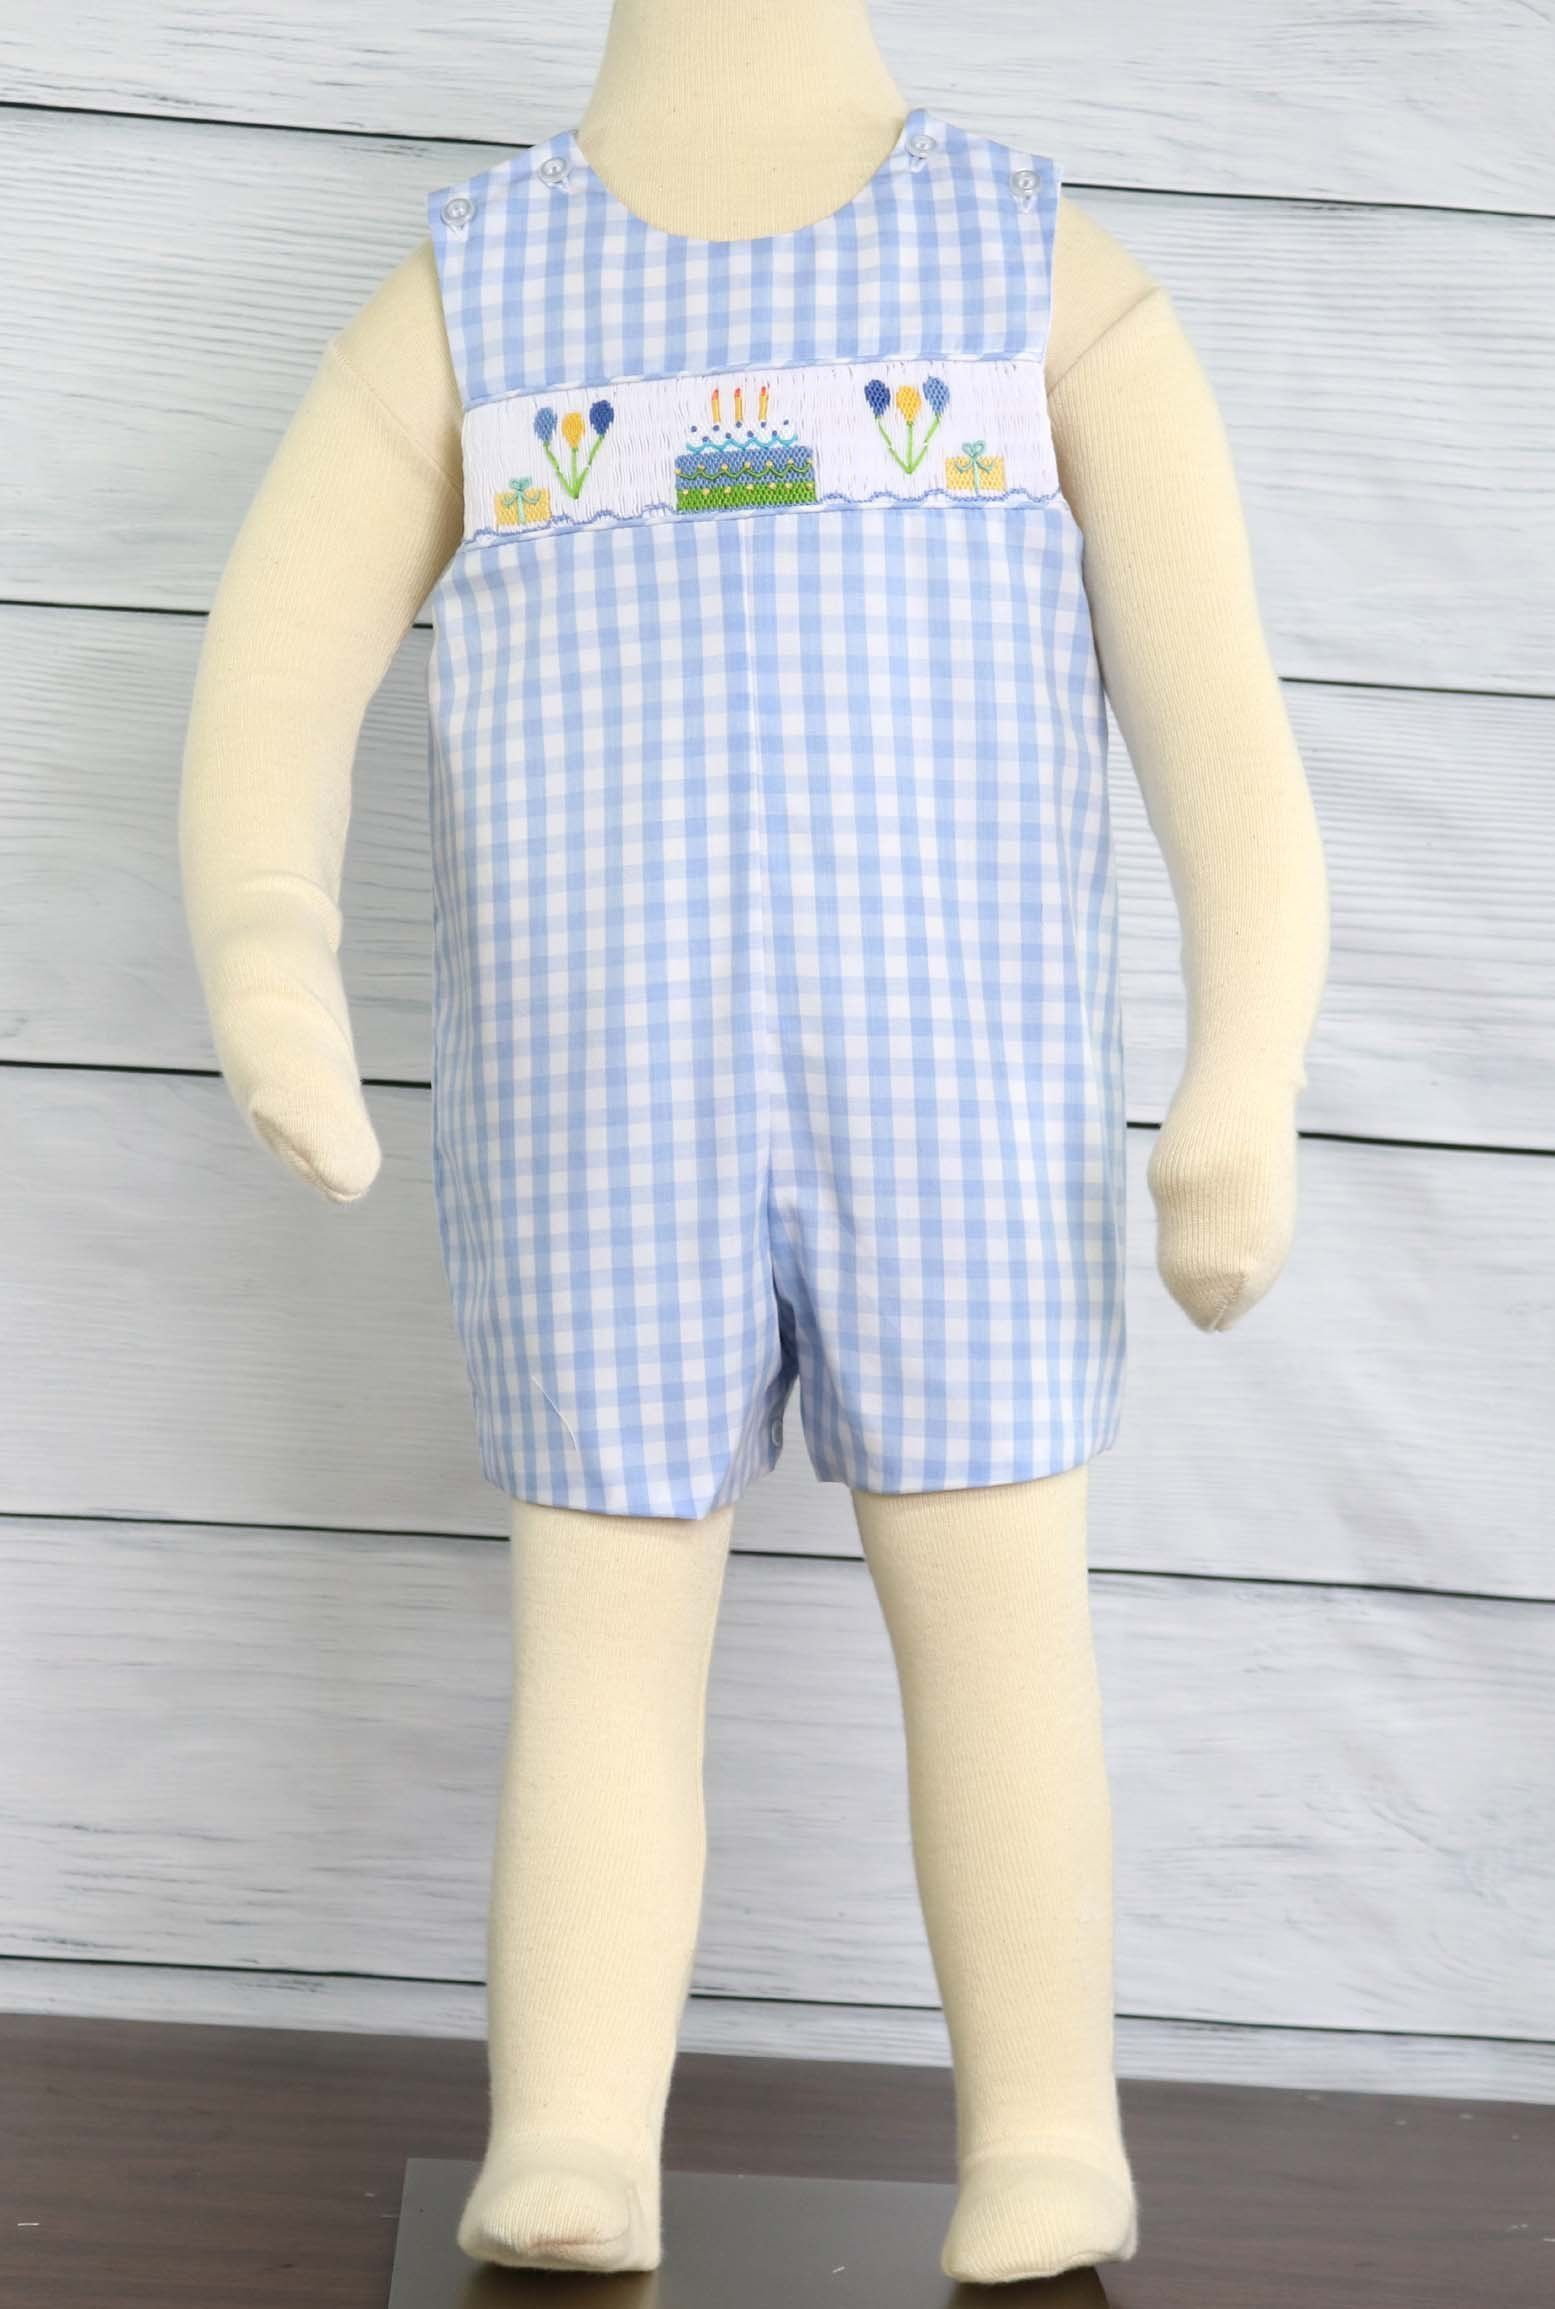 Boy Cake Smash Outfit, 1st Birthday Outfit Boy, Toddler